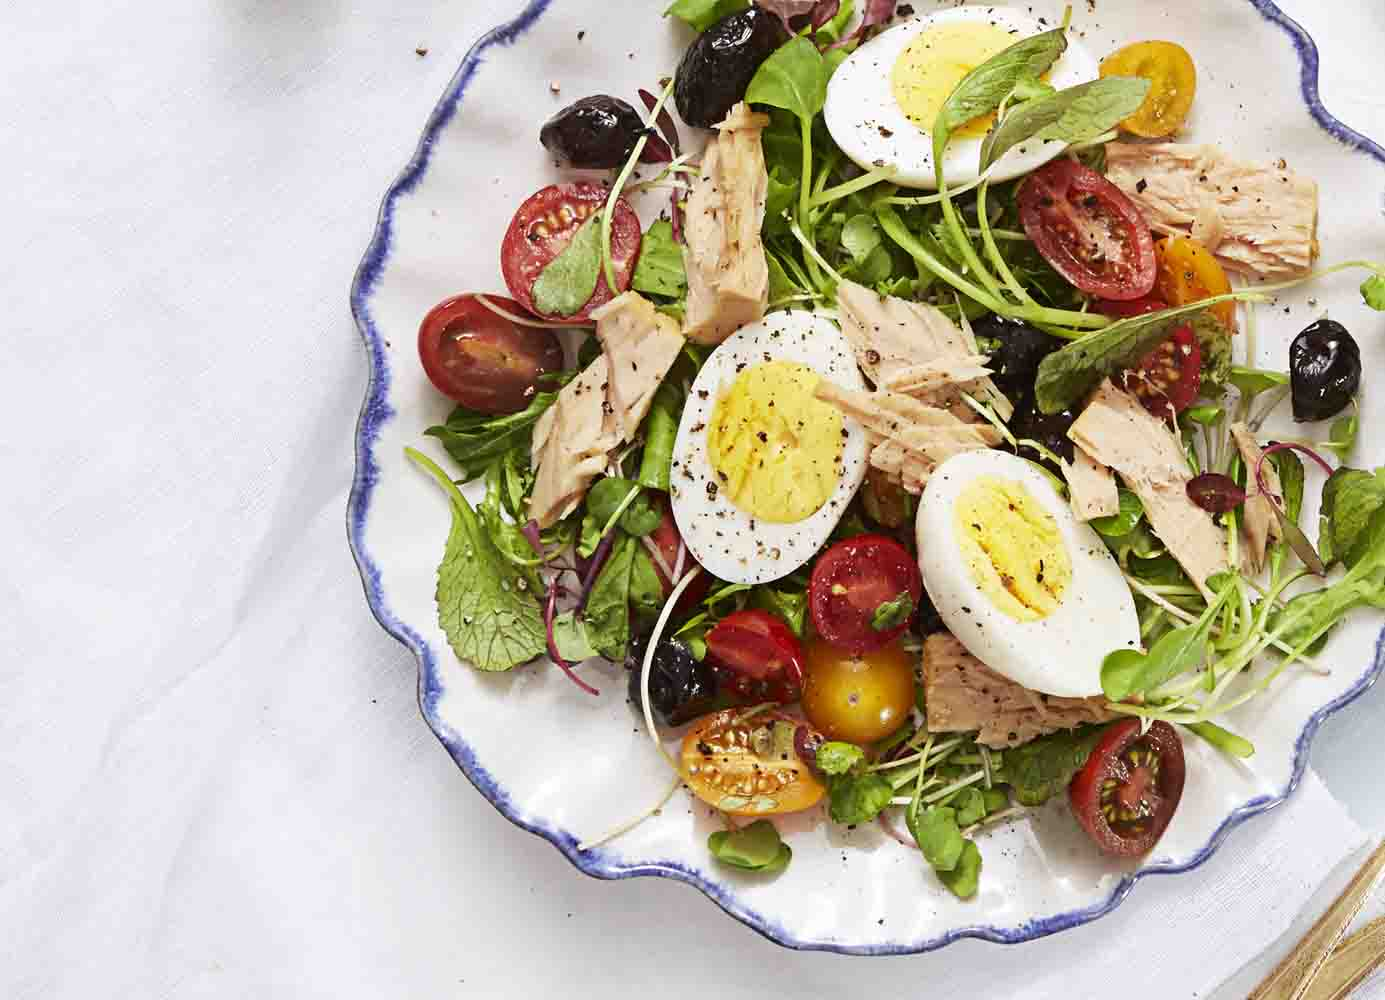 digital photo organizing ideas - Niçoise Salad